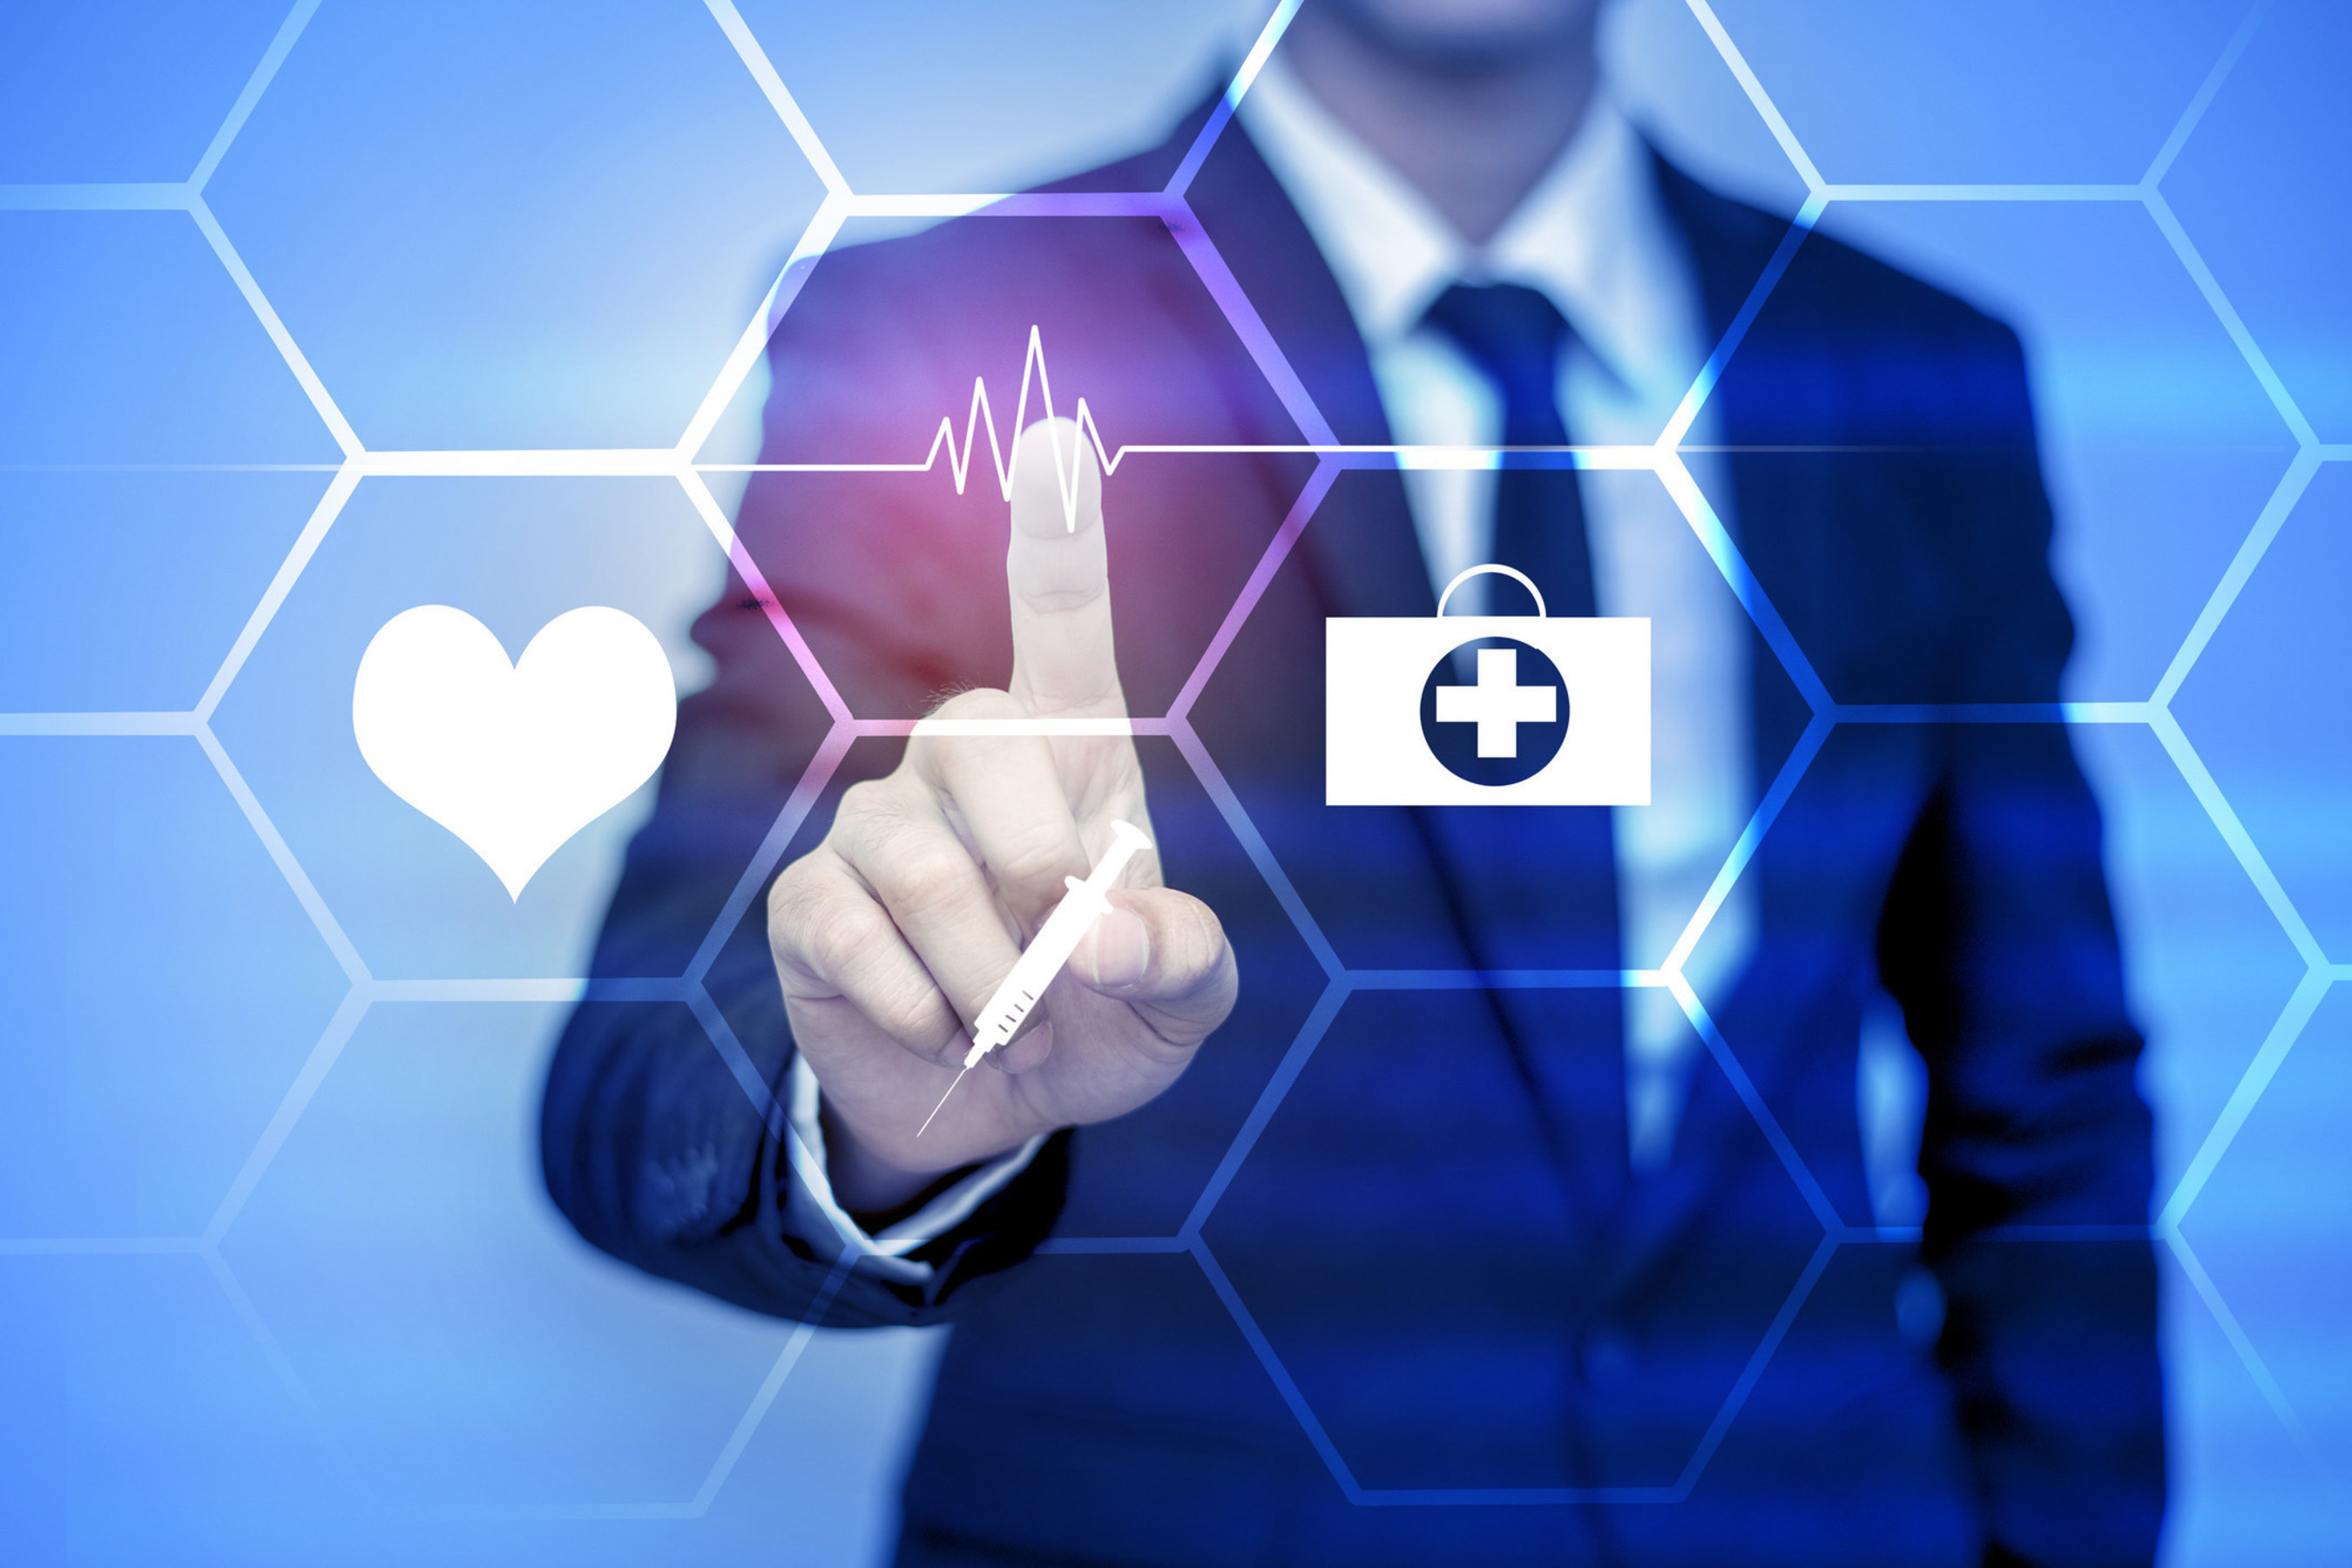 Strong Opportunities for Big Data in Healthcare - Population Health Management, Clinical Decision Support and Real-World Data